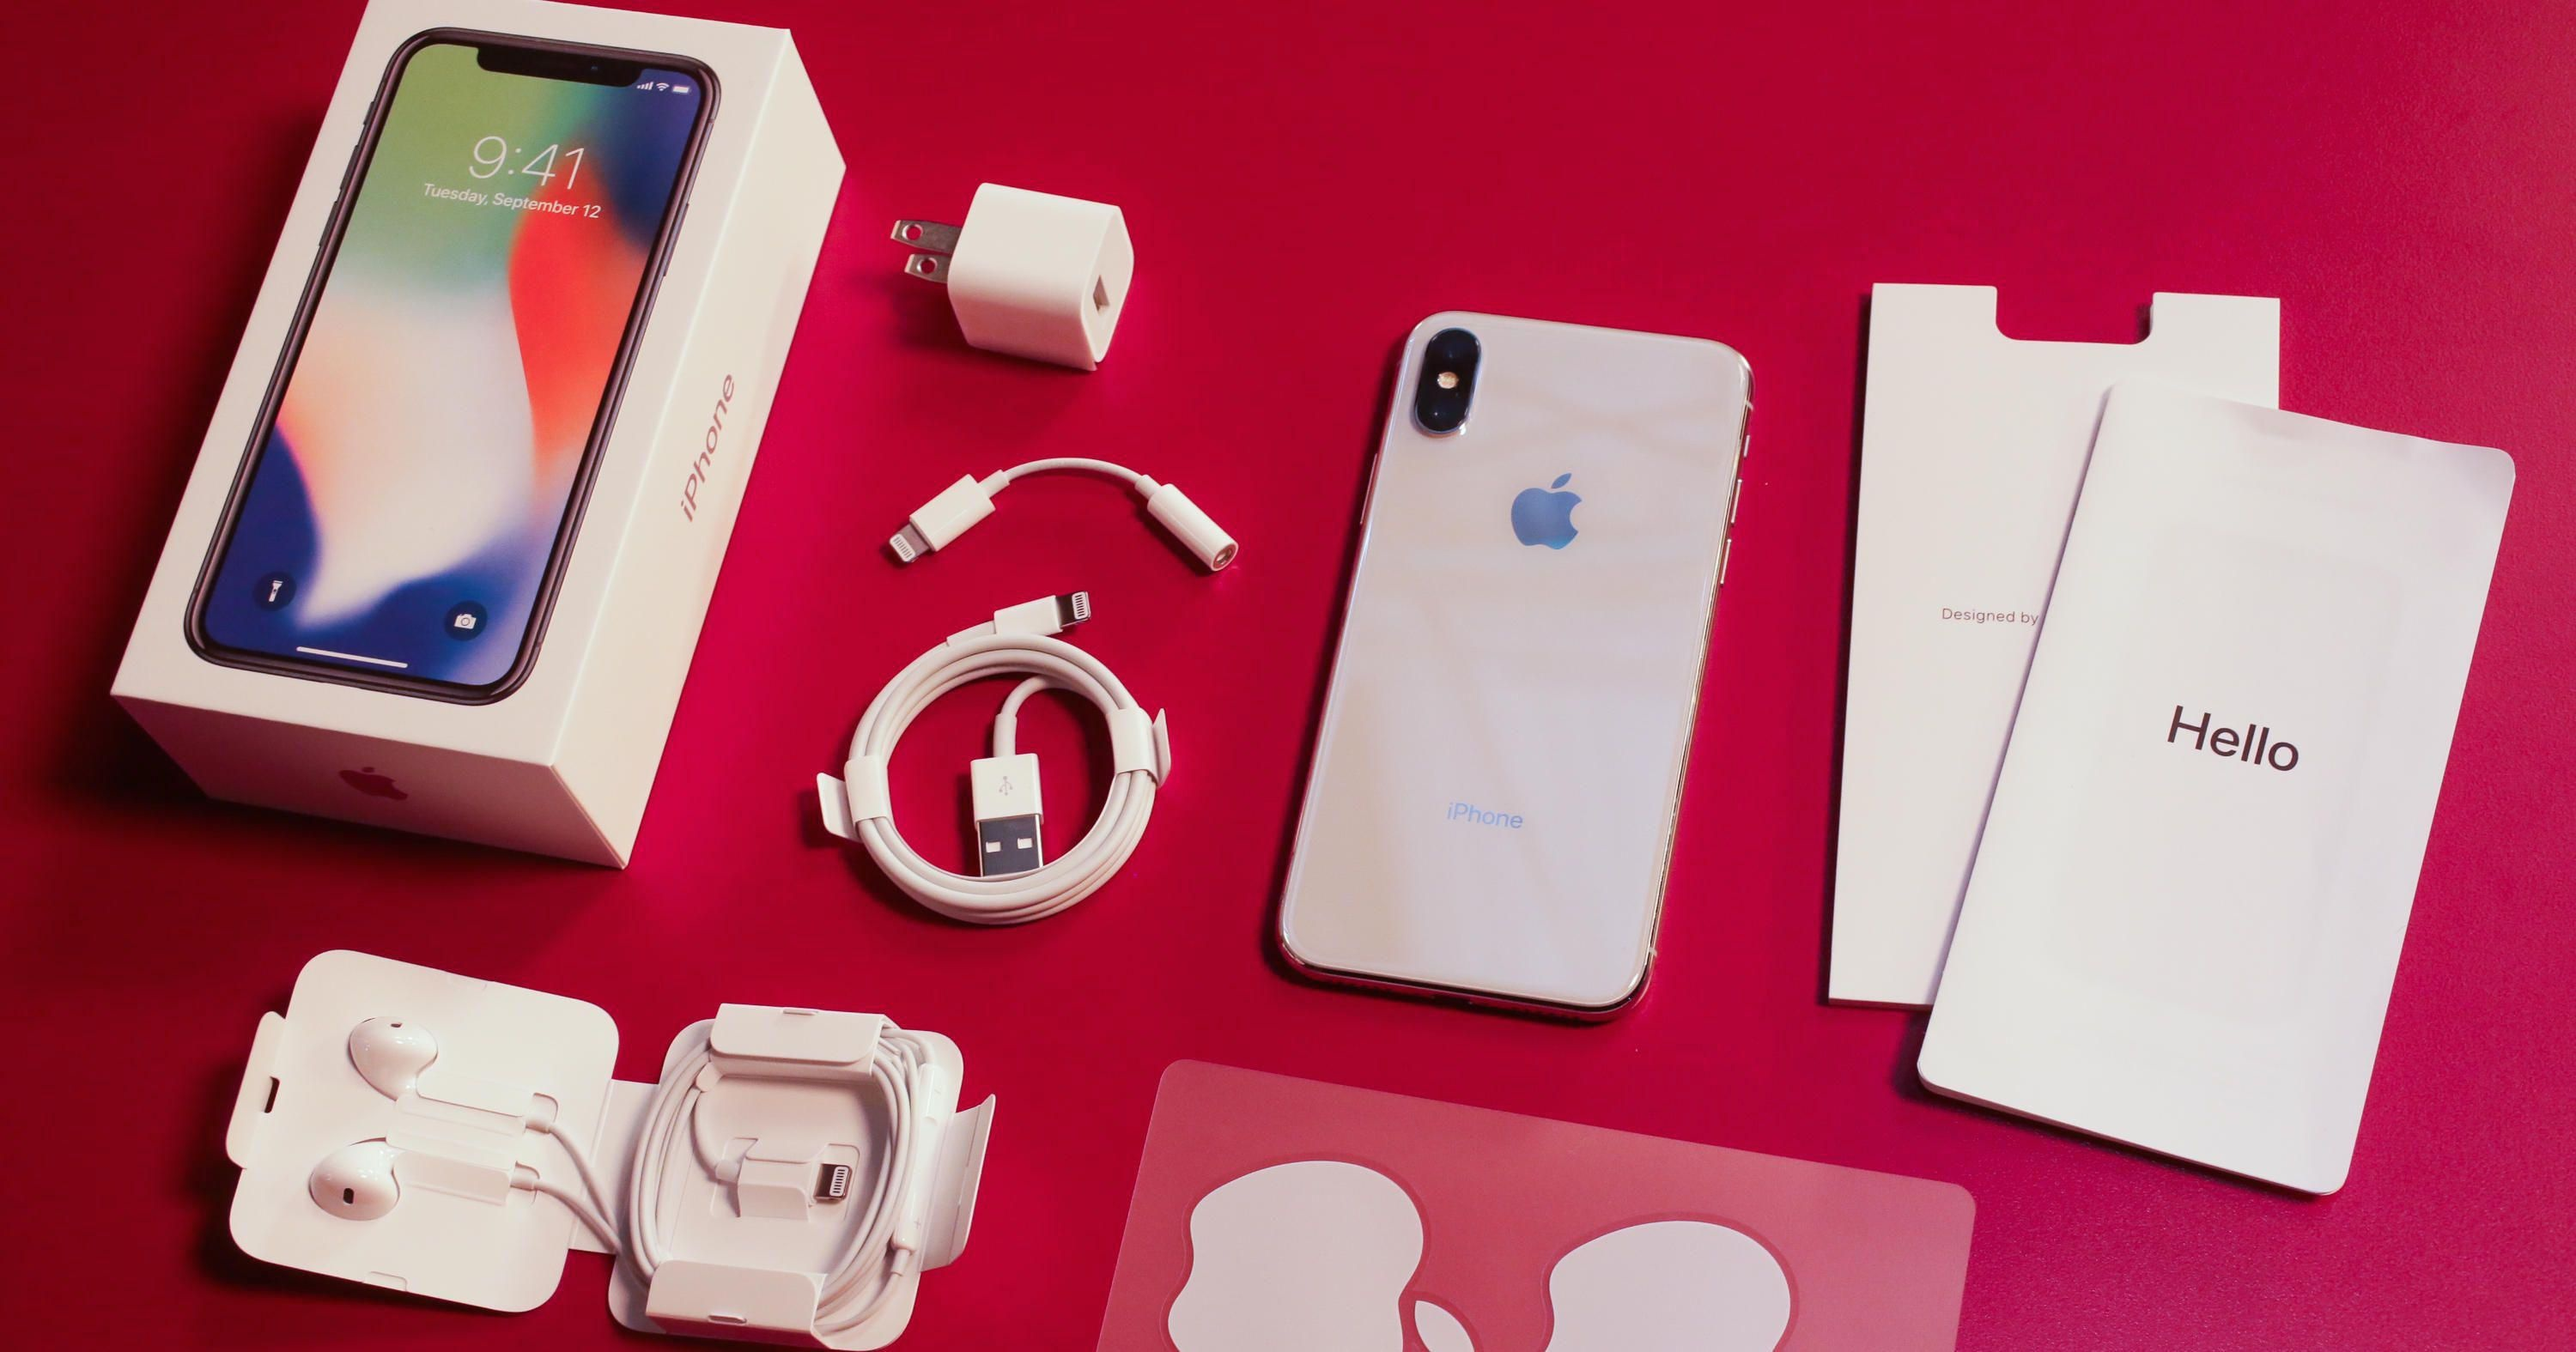 What are the accessories provided in the box of an iPhone X